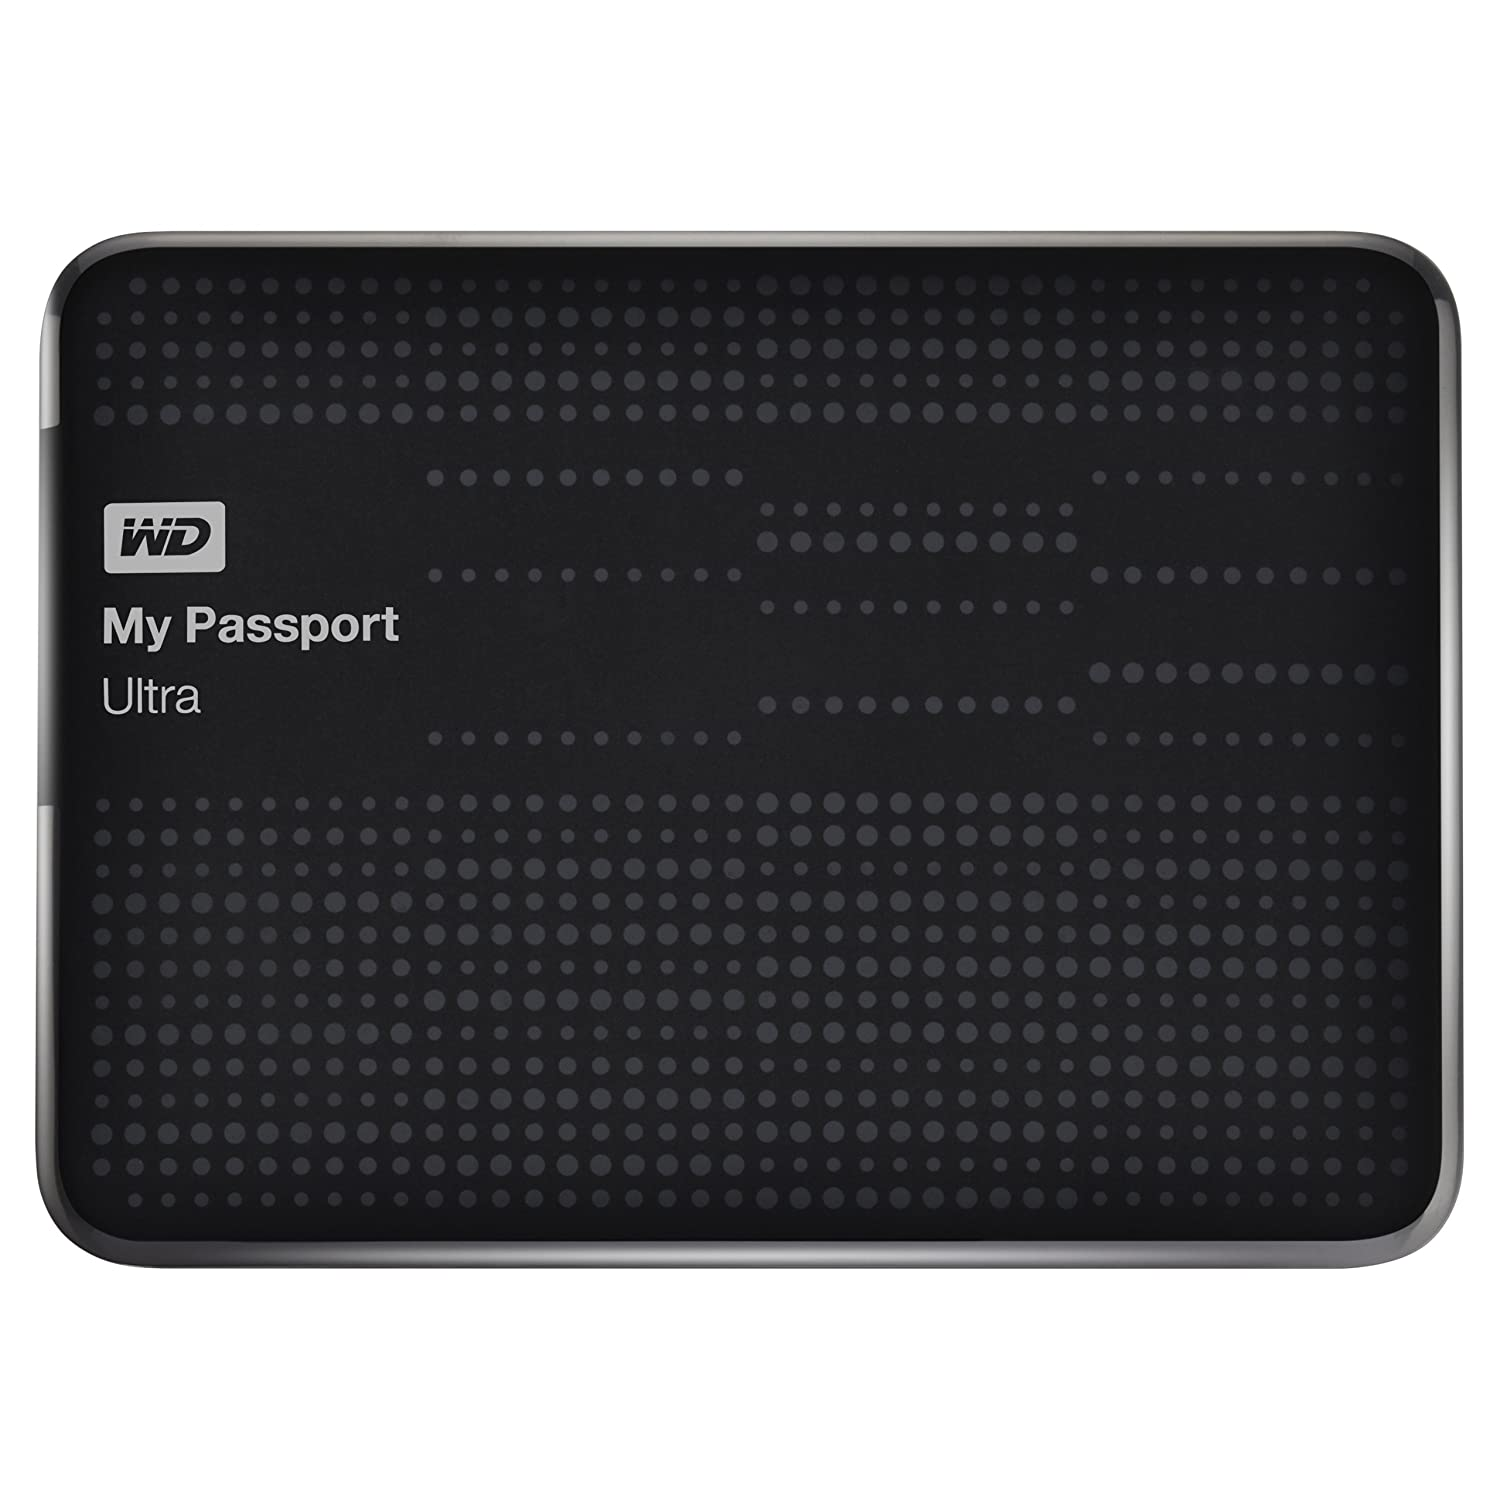 WD My Passport Ultra External Hard Drive